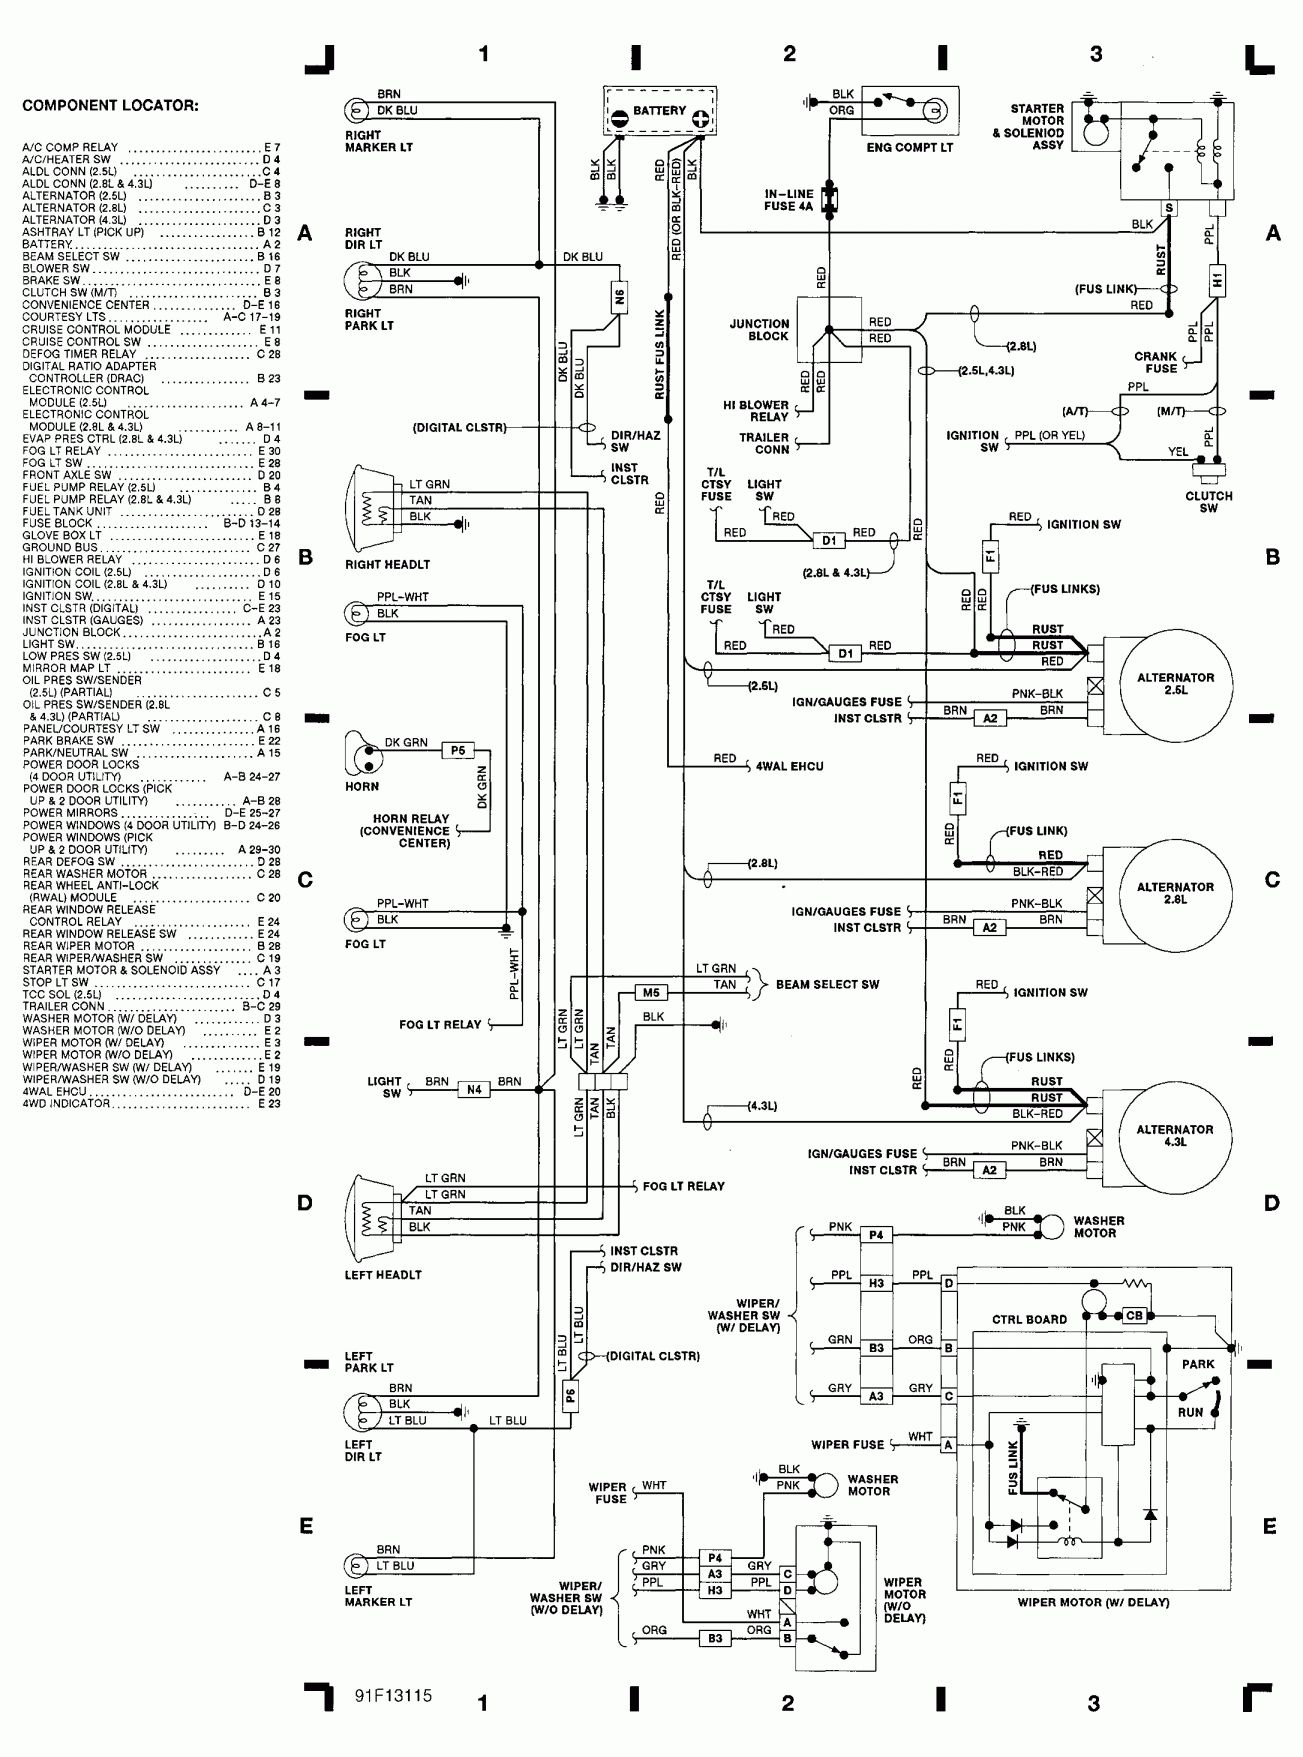 Chevrolet Truck Wiring Diagram And Engine Compartment